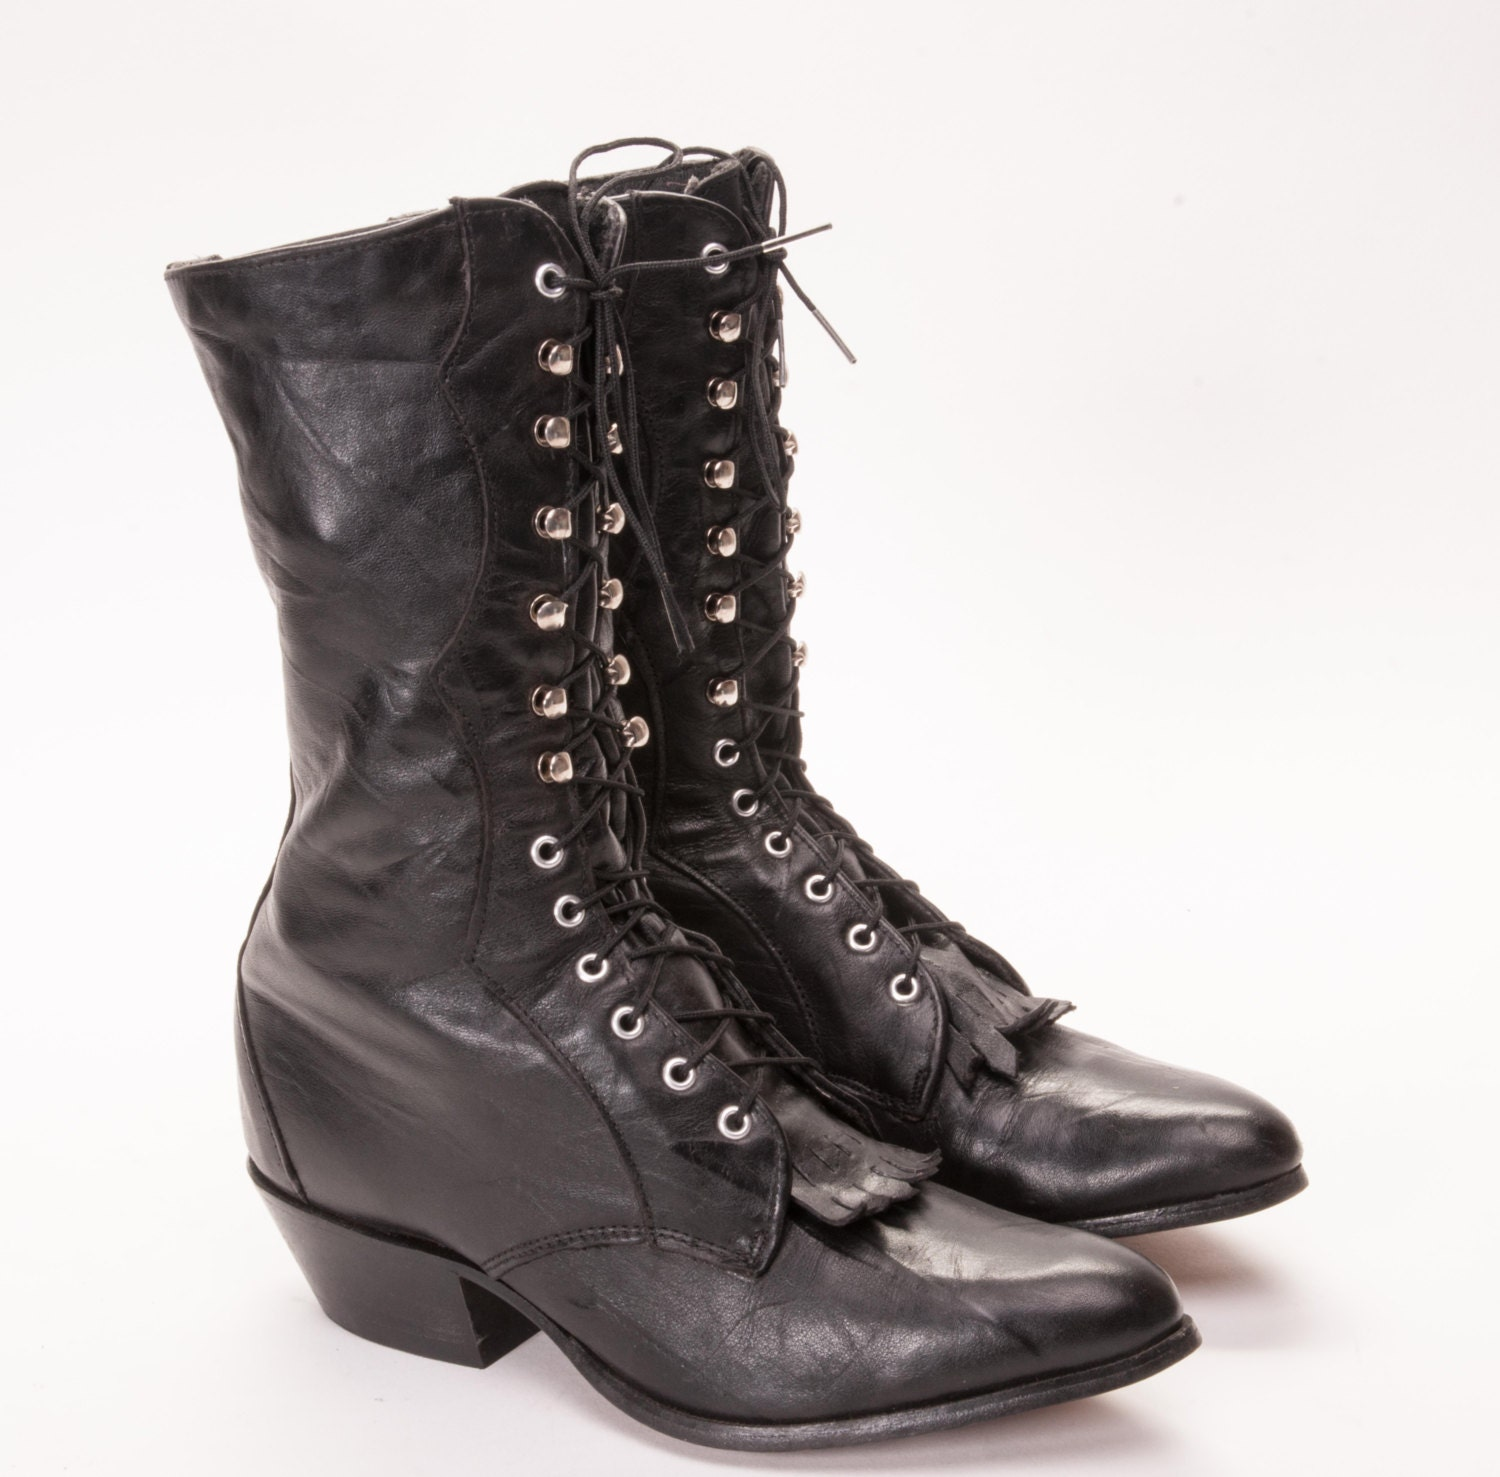 packer boot womens size 6 made by by